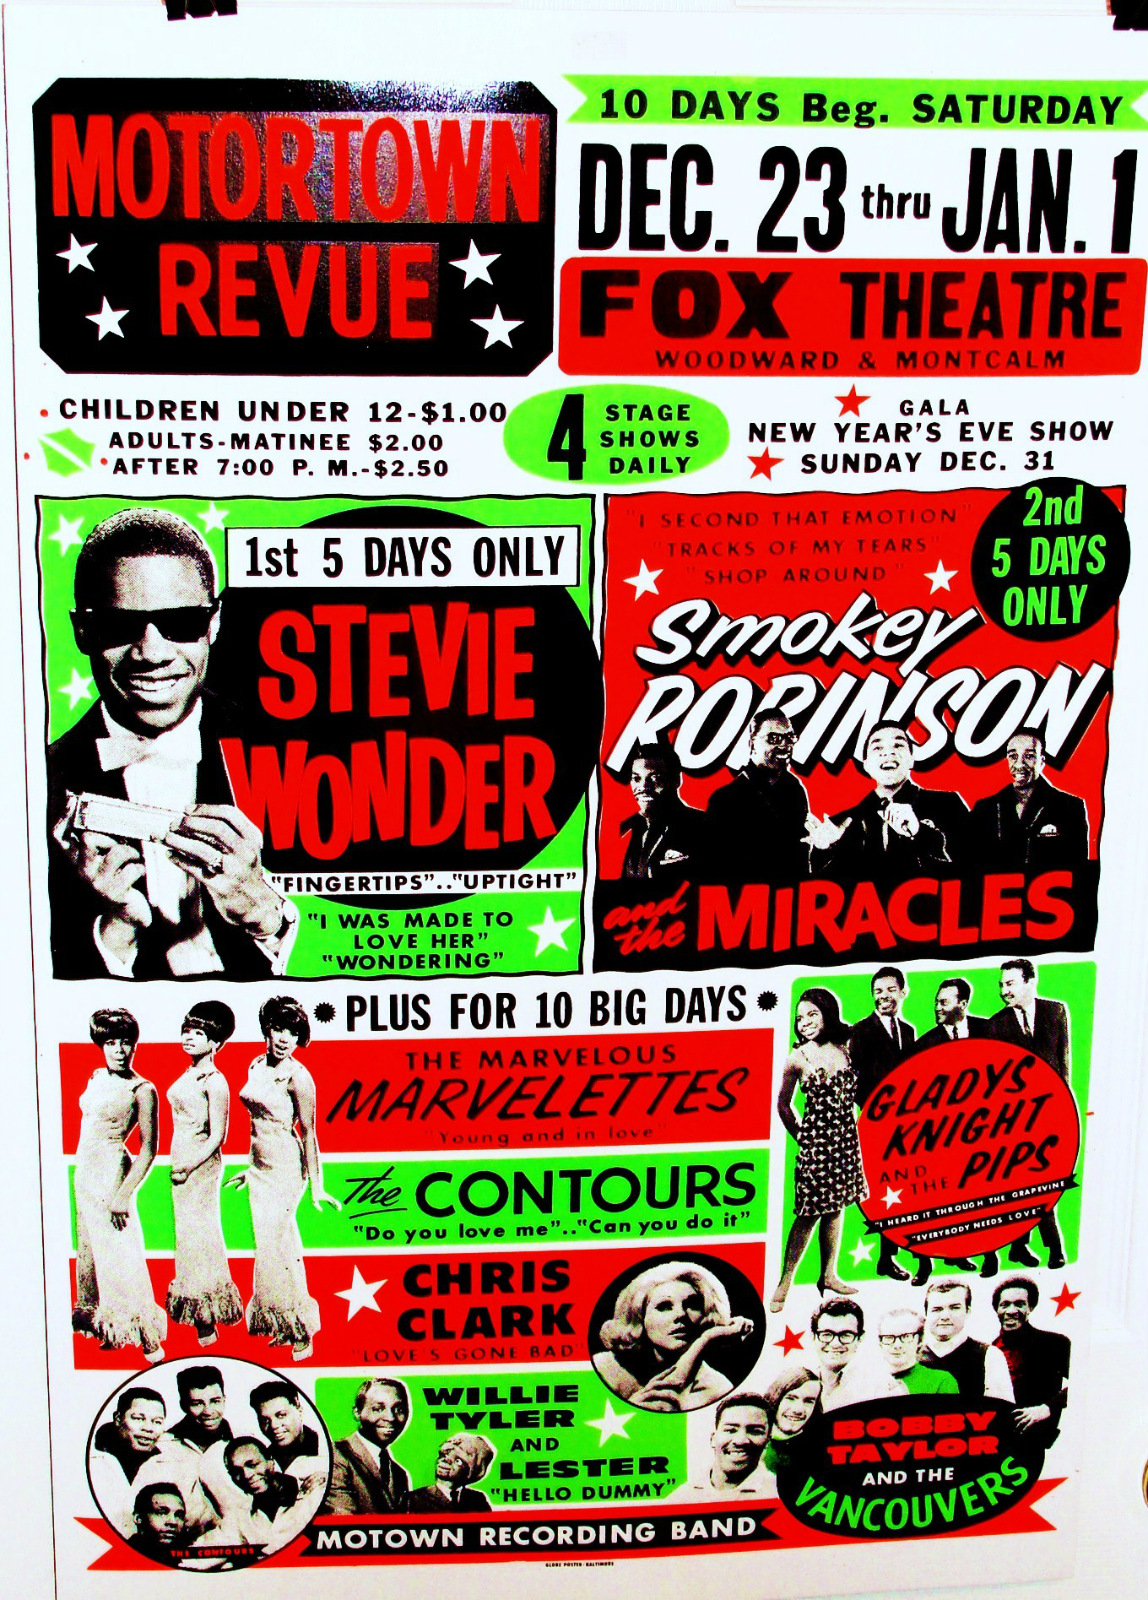 Motor-Town-Revue-Poster-Detroit-Fox-Theater-1965-1966